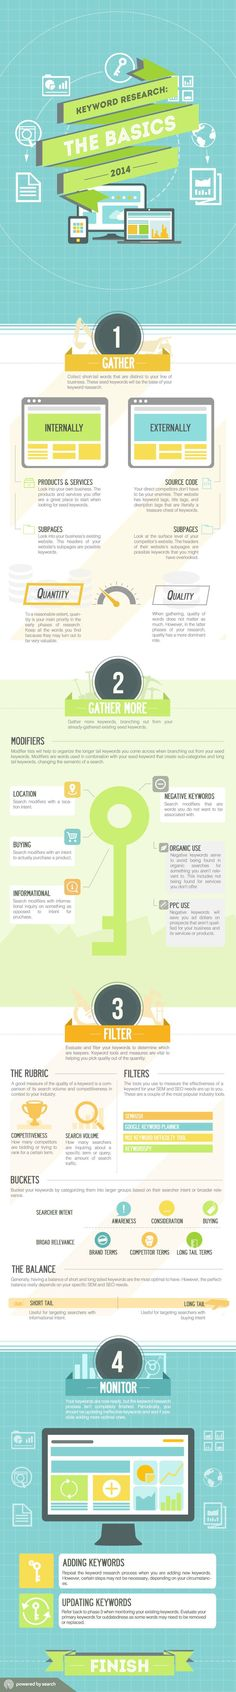 17 Remarkable Keyword Research Tips #Infographic